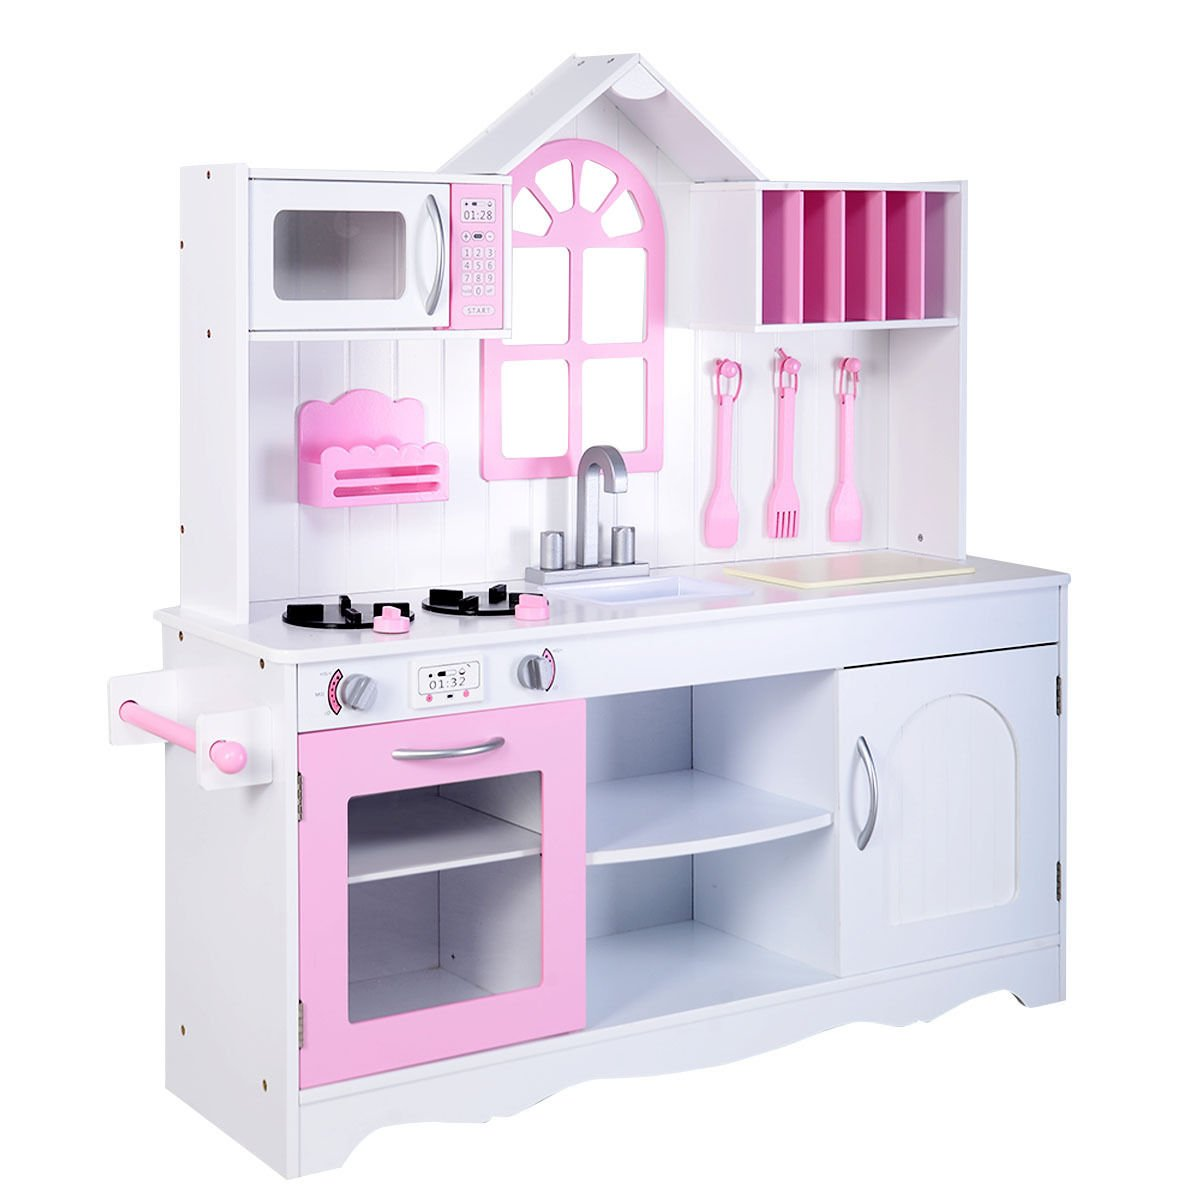 Cheap Play Kitchen Sets on skin care sets cheap, bedroom sets cheap, crib sets cheap, play dough sets cheap,